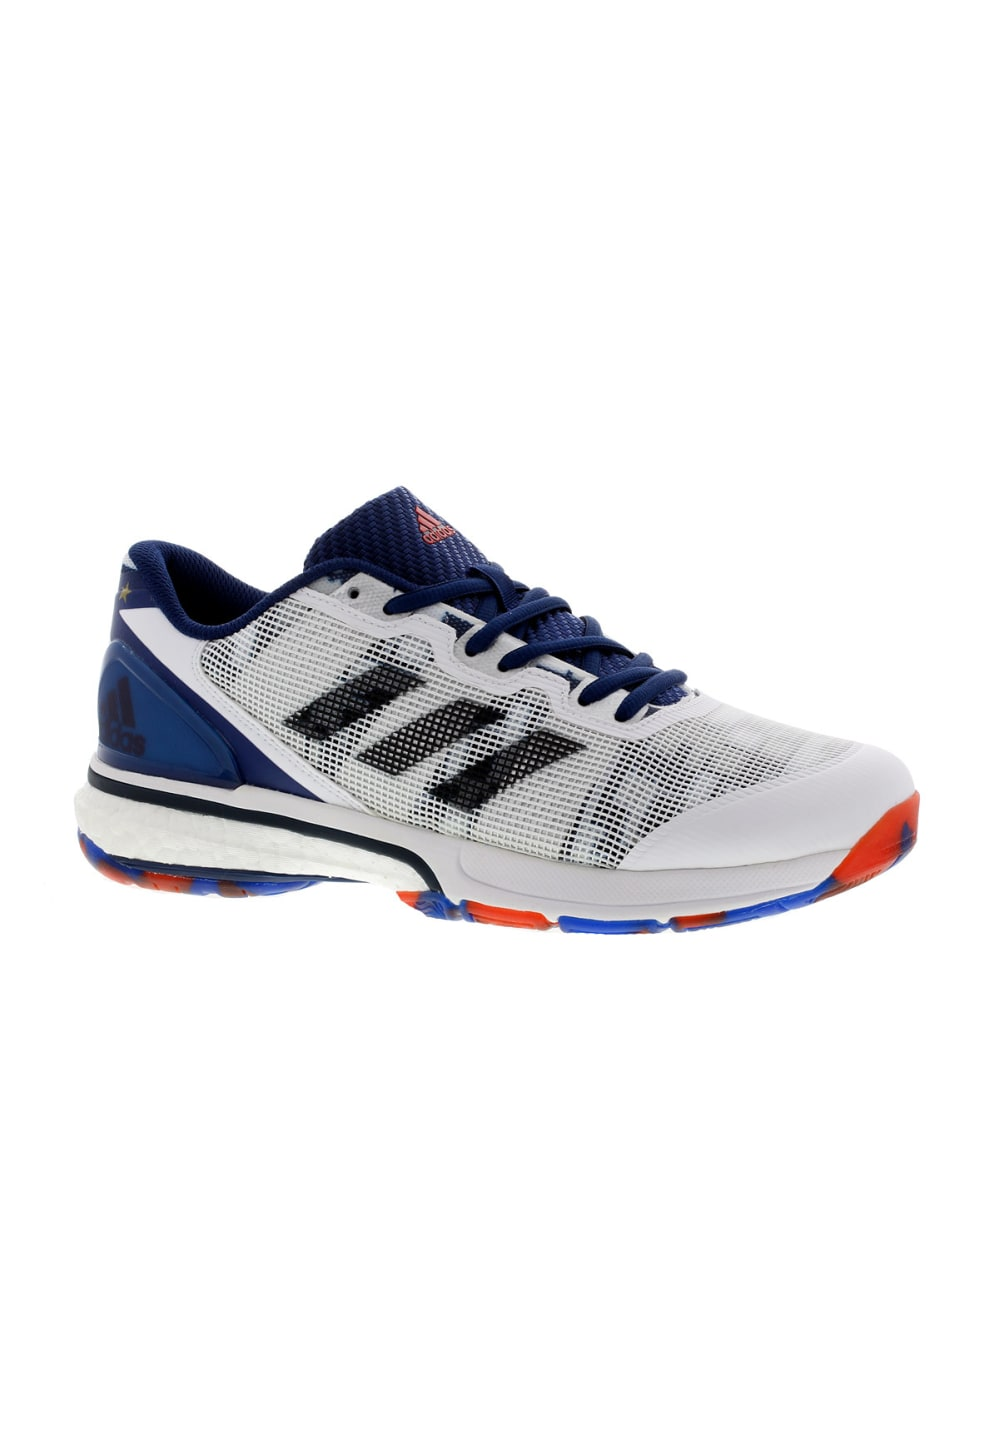 Adidas Stabil Stimuler Chaussures 20y zpW9cpMNq